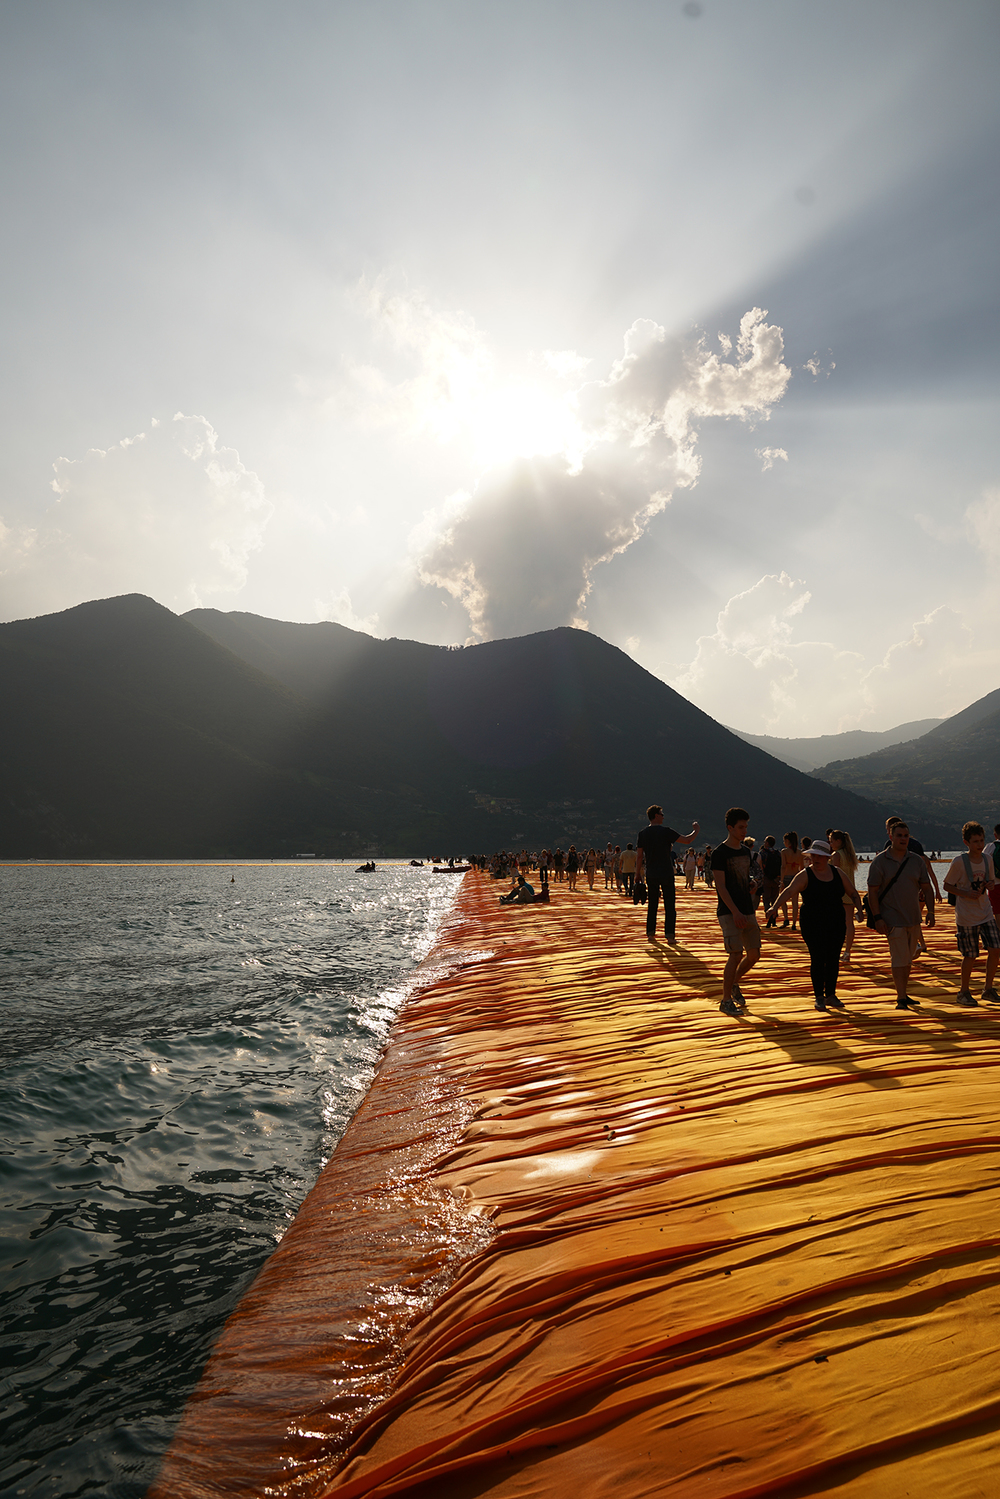 The Floating Piers, Lake Iseo, Italy, 2014-16